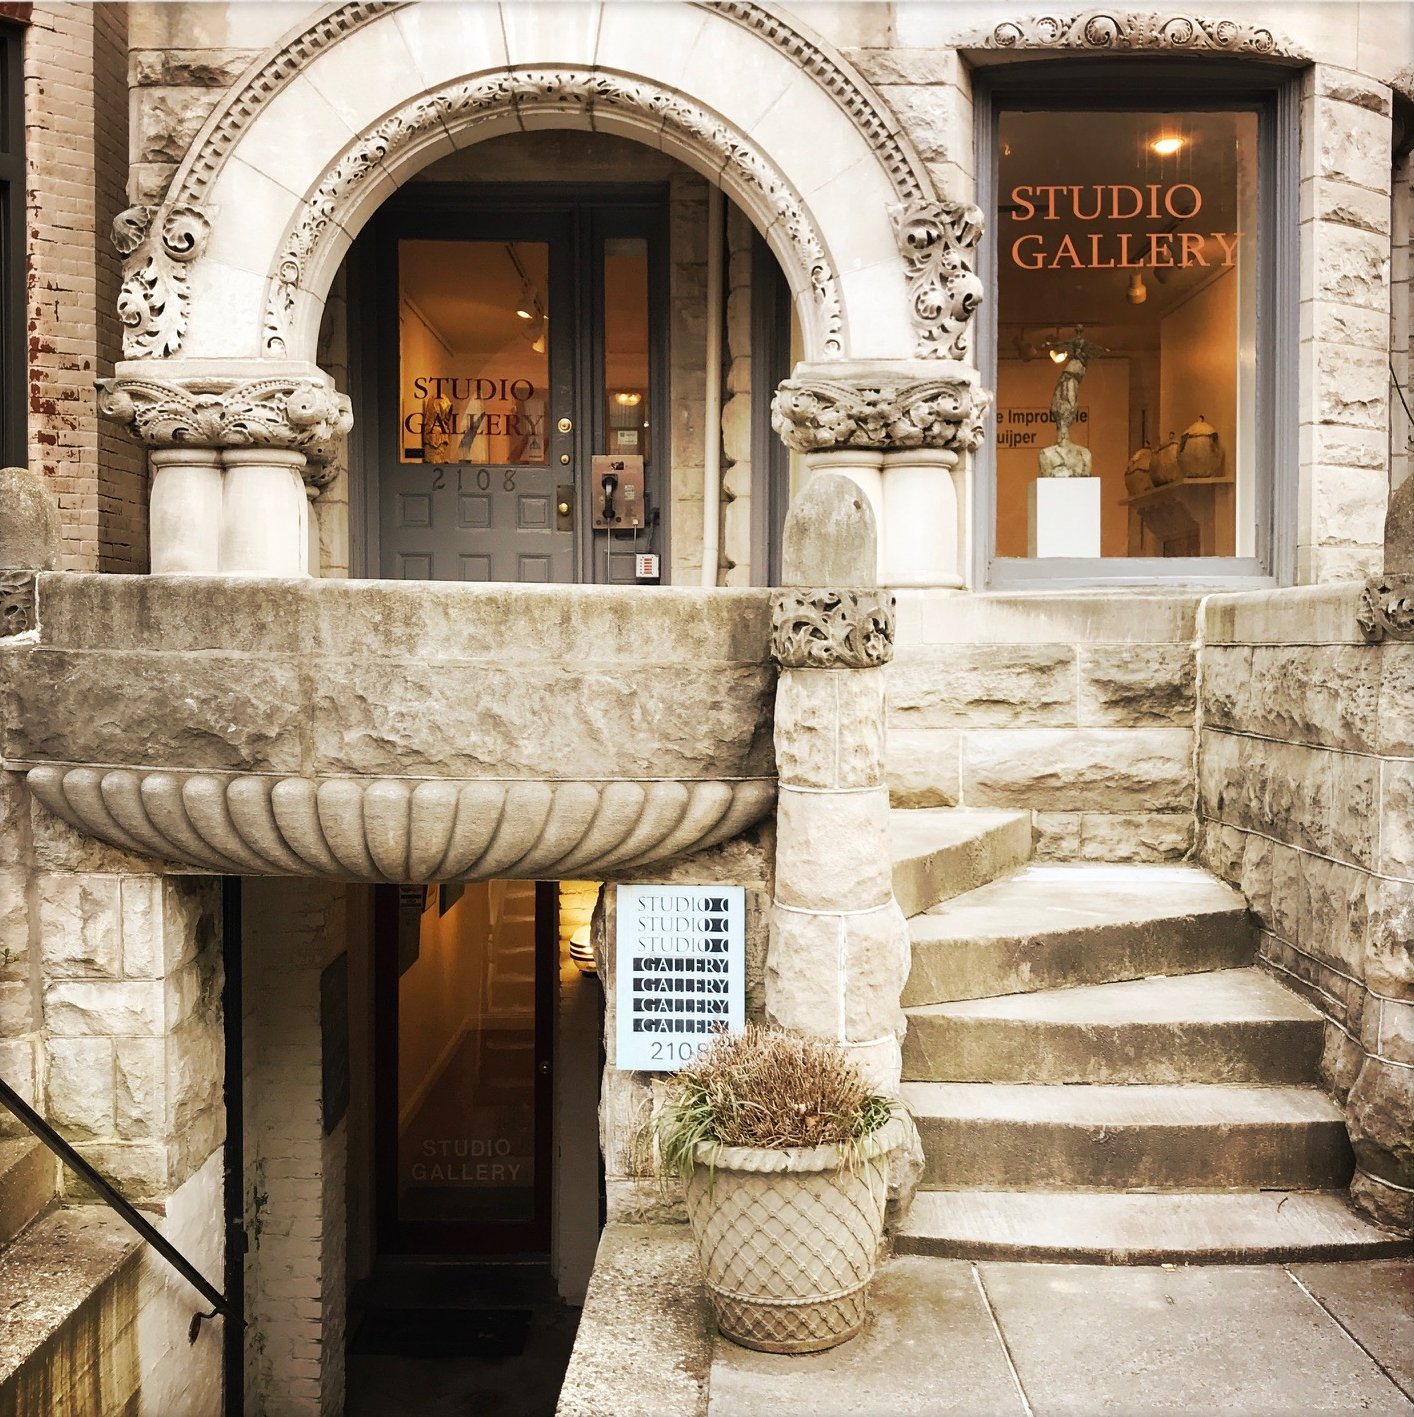 Studio Gallery  is housed in a beautiful historical building, nestled in Dupont Circle.